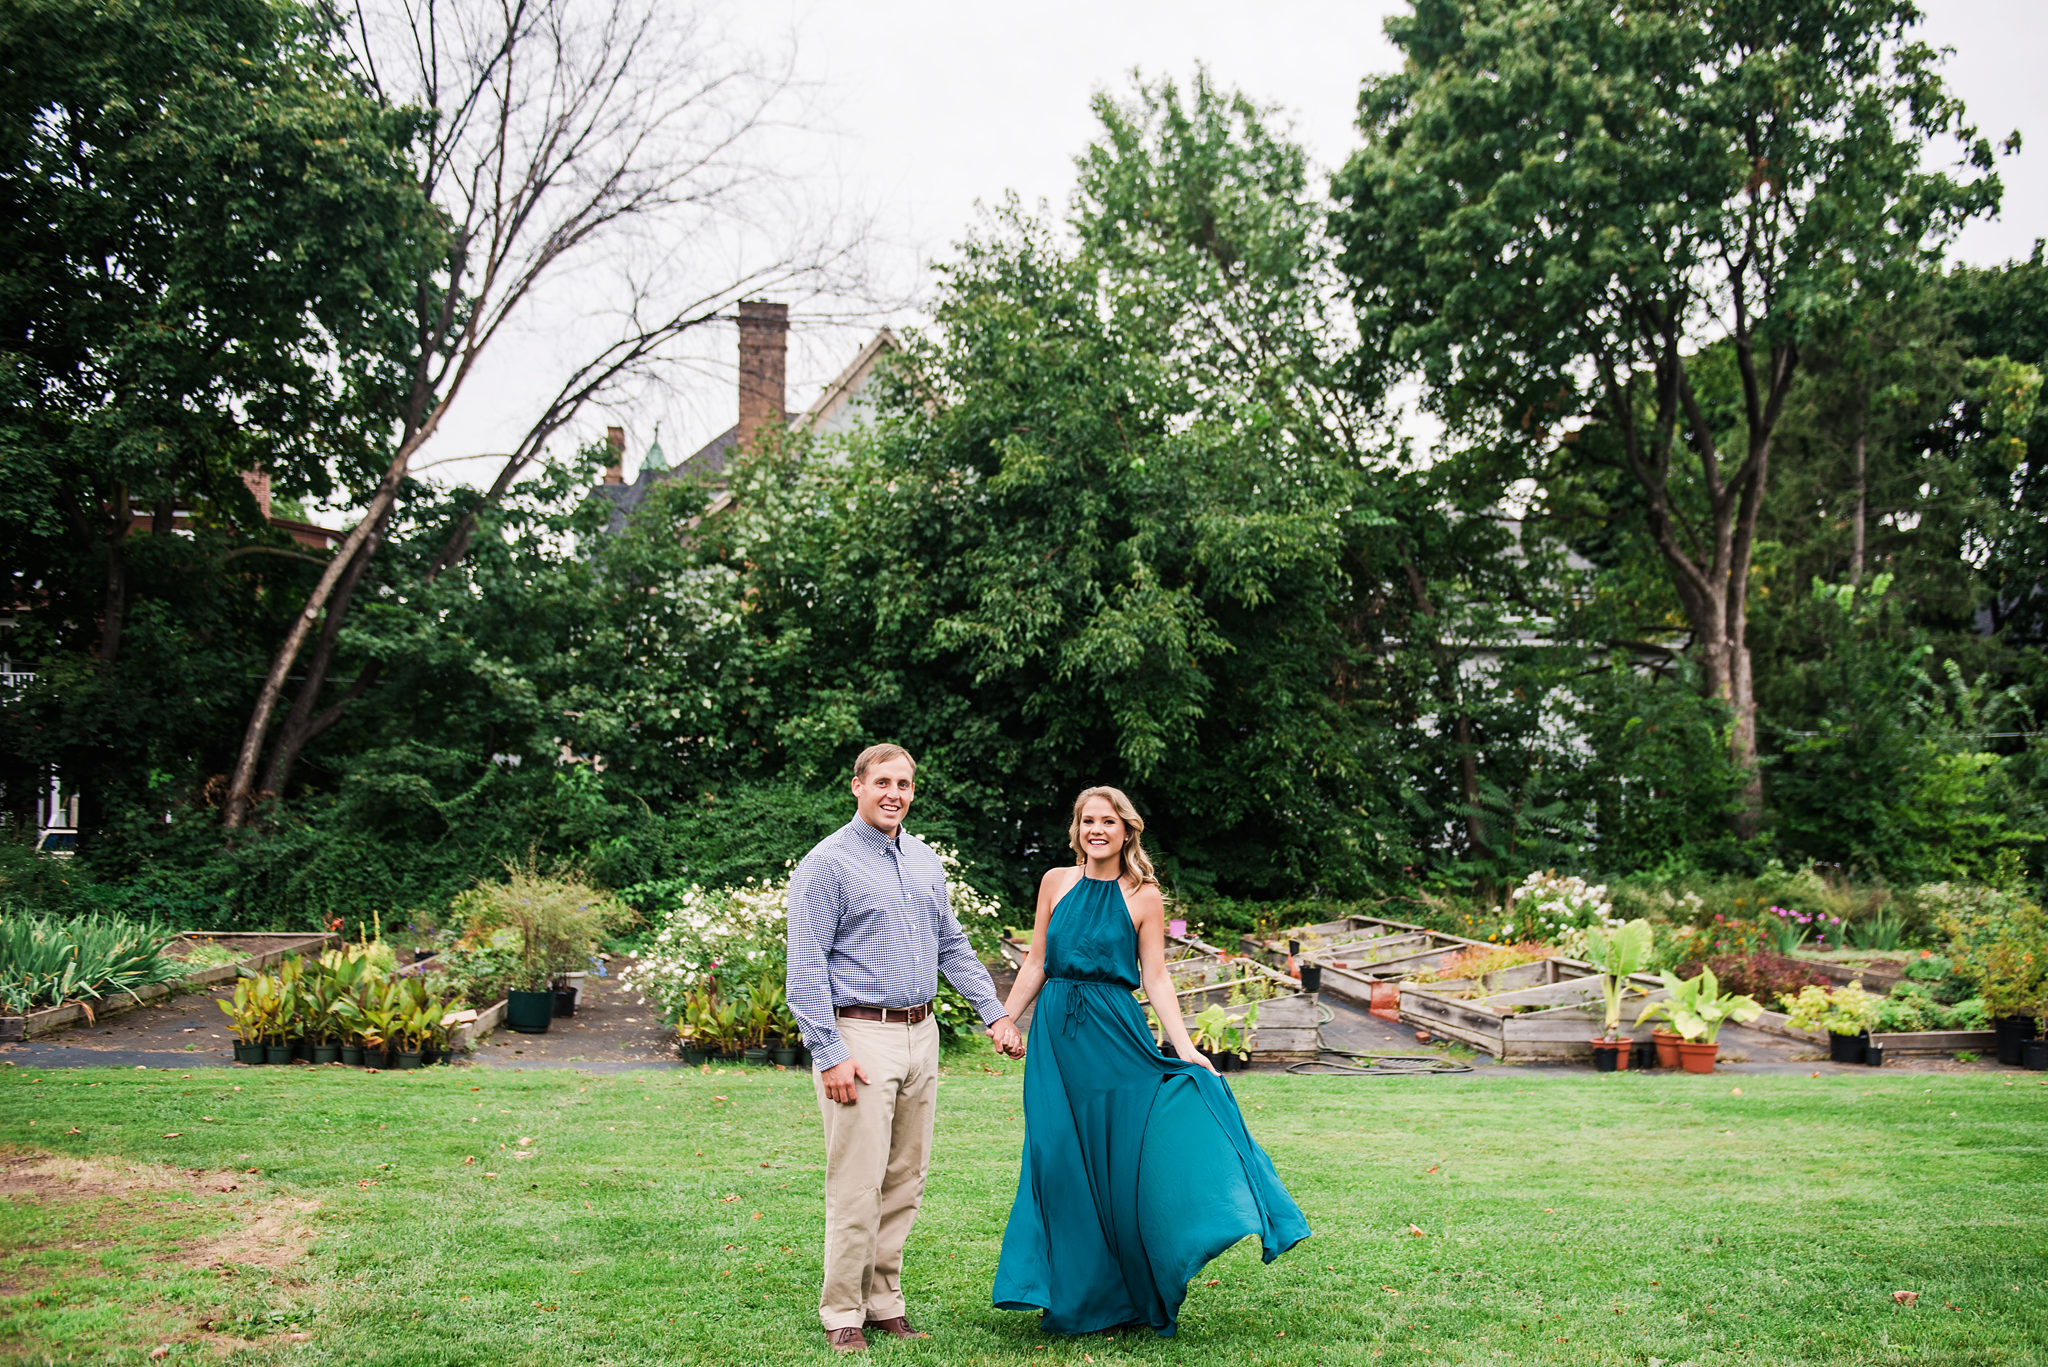 George_Eastman_House_Rochester_Yacht_Club_Rochester_Engagement_Session_JILL_STUDIO_Rochester_NY_Photographer_DSC_8137.jpg